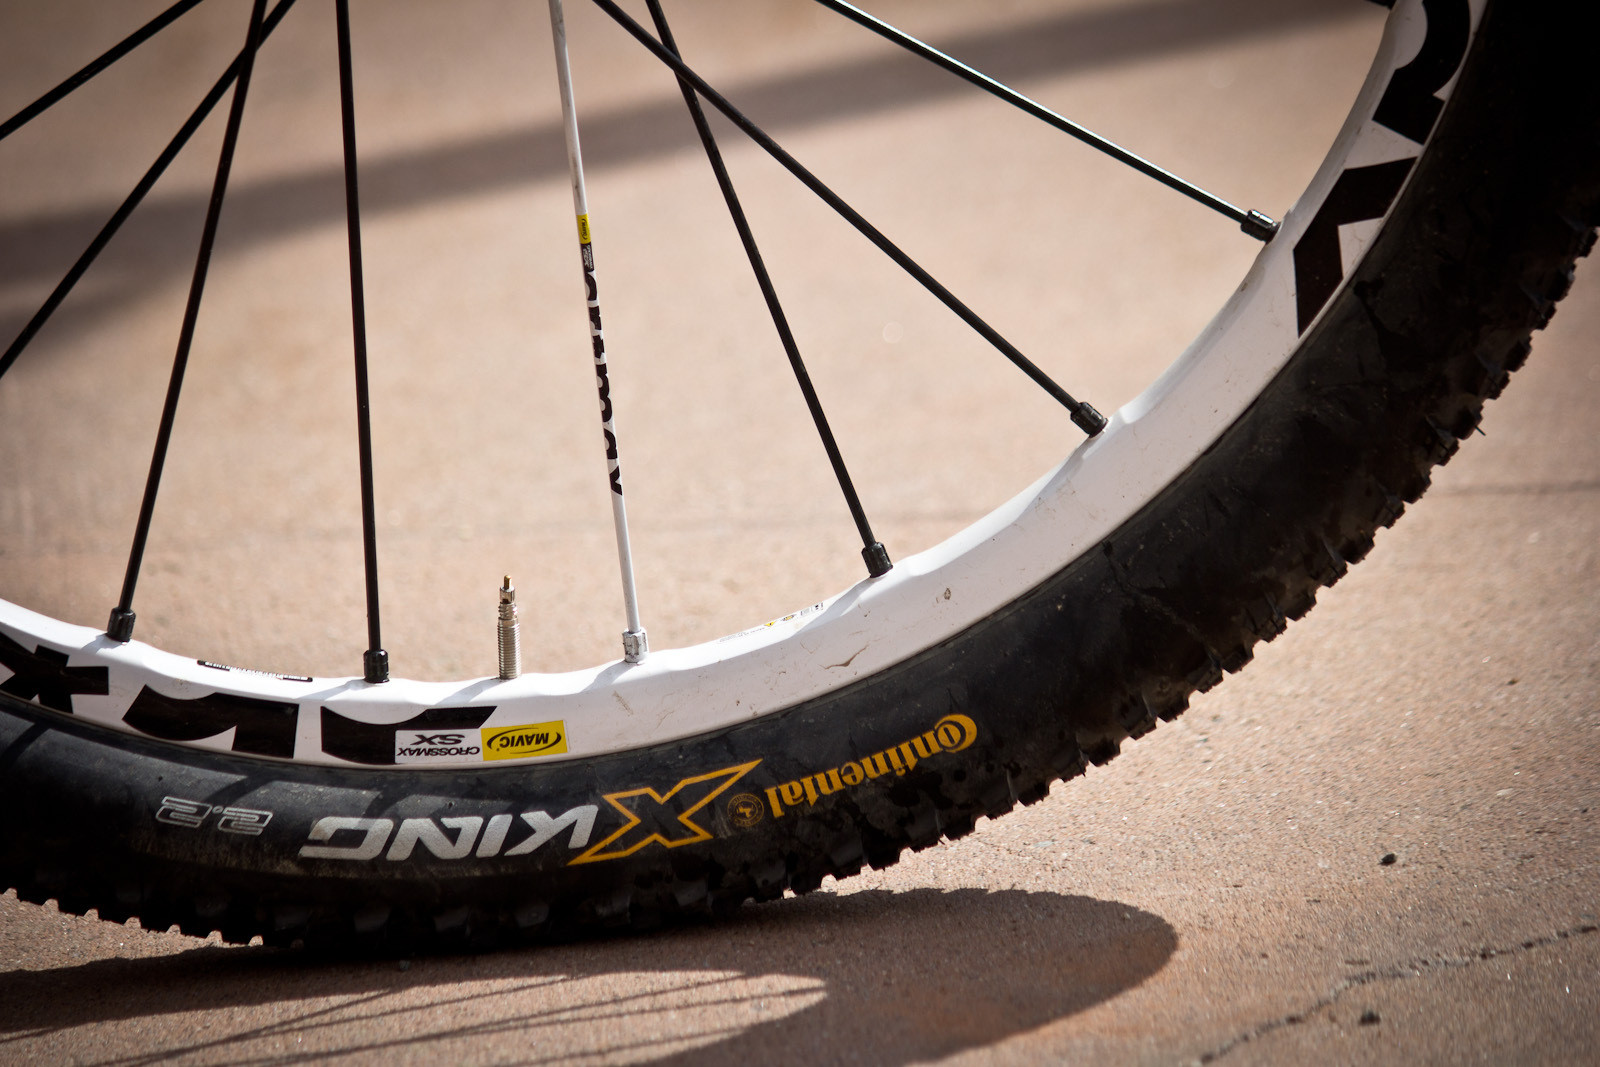 Conti X King Tires, Mavic Crossmax SX Wheels - Winning Bike: Martin Söderström's Specialized P.Slope - Mountain Biking Pictures - Vital MTB